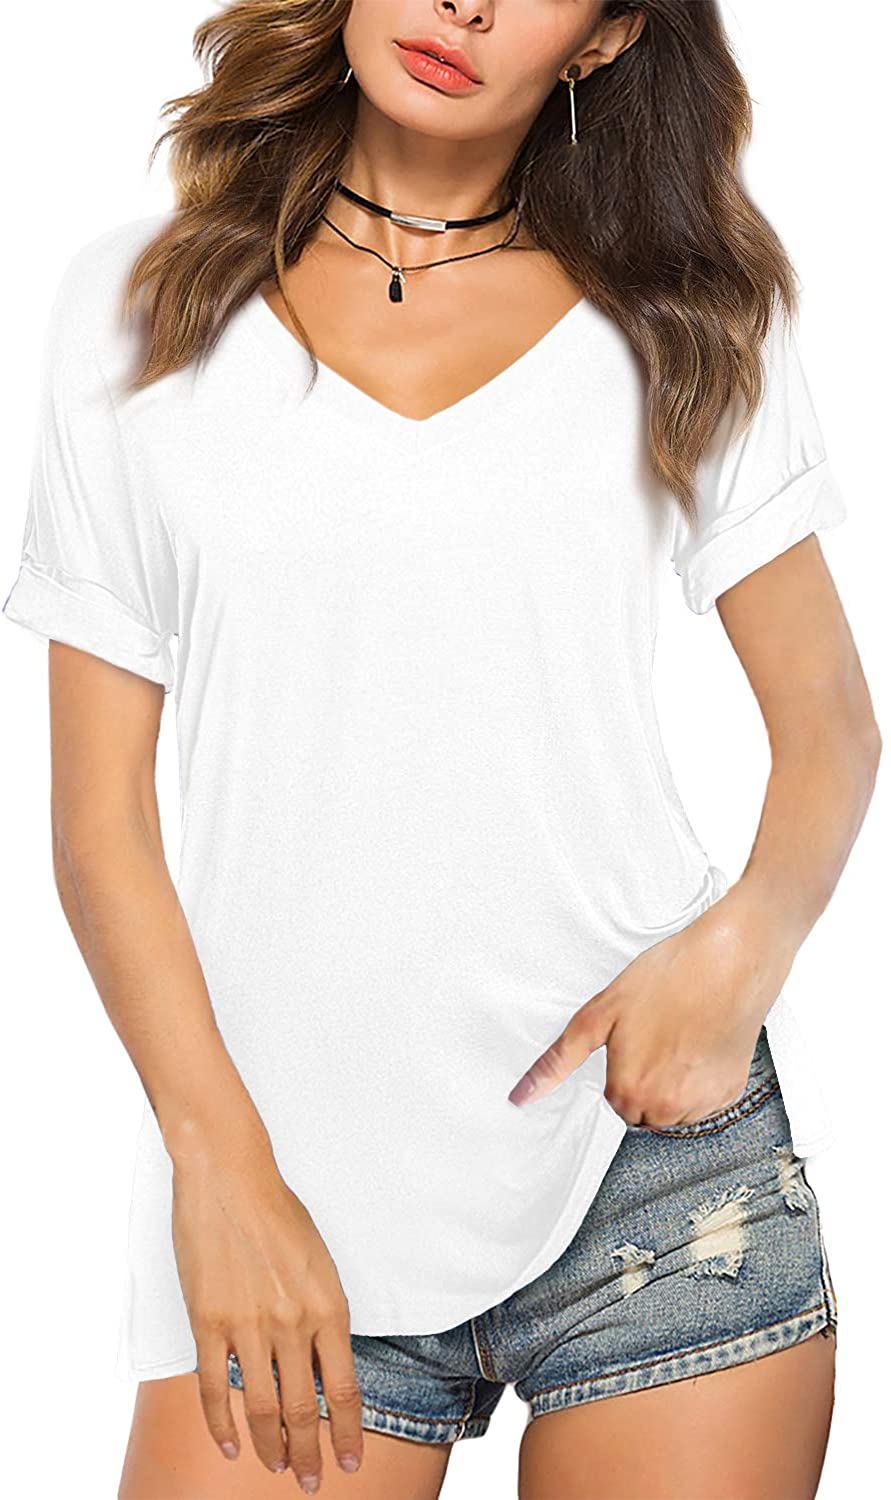 Amoretu Womens V Neck Shirts Cuffed Short Sleeve Tunic Top for Summer